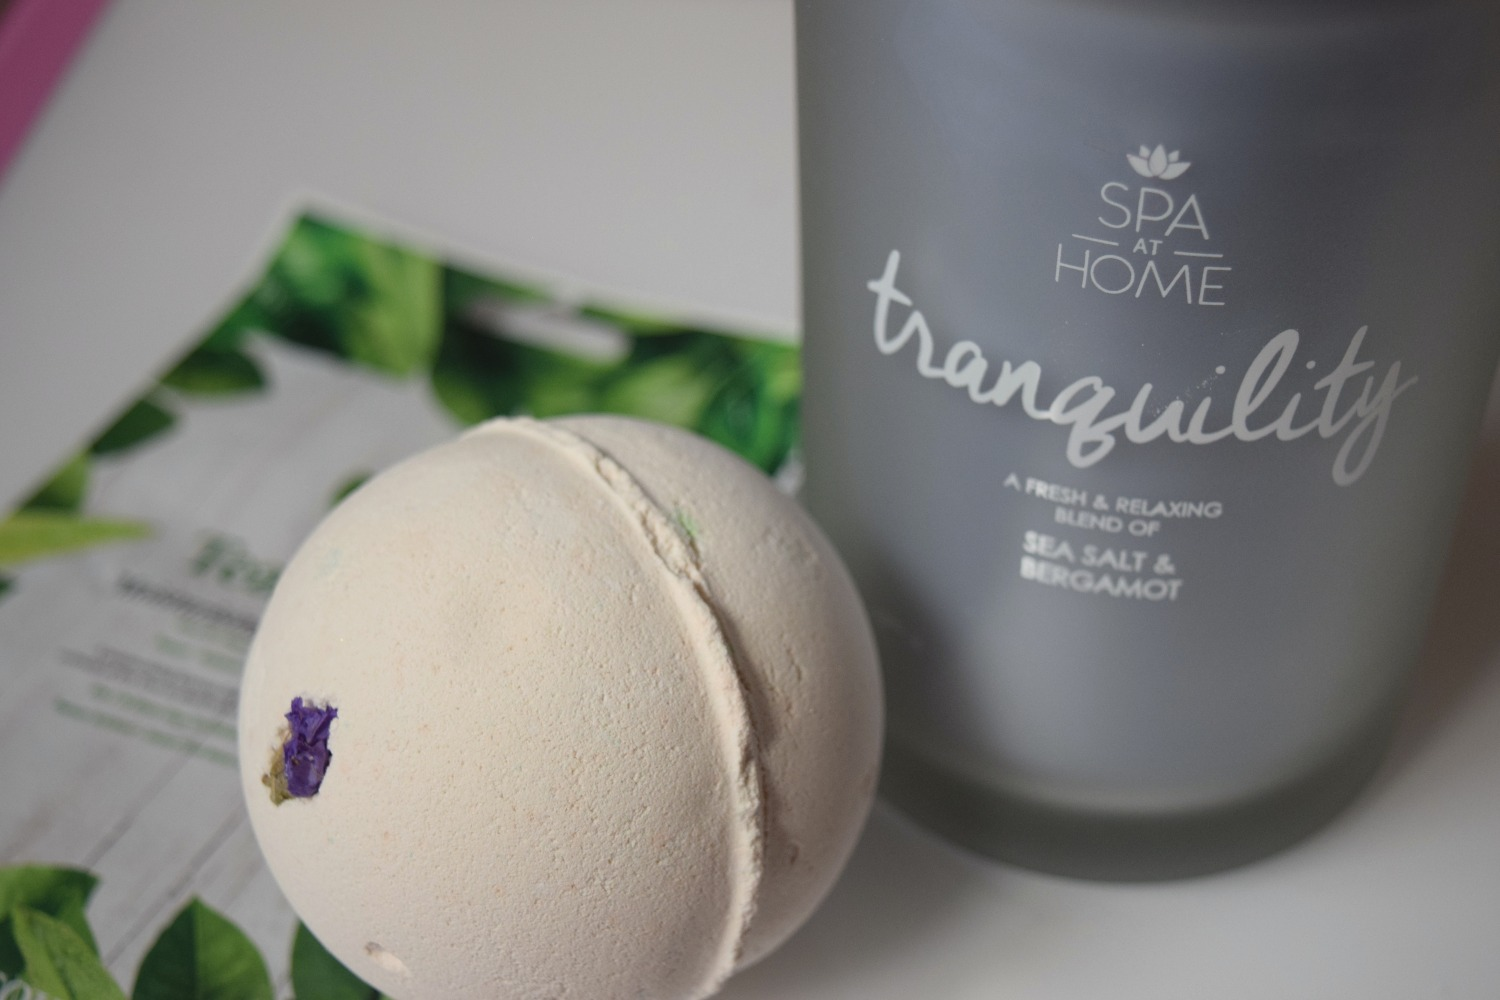 self care items - bath bomb and candle